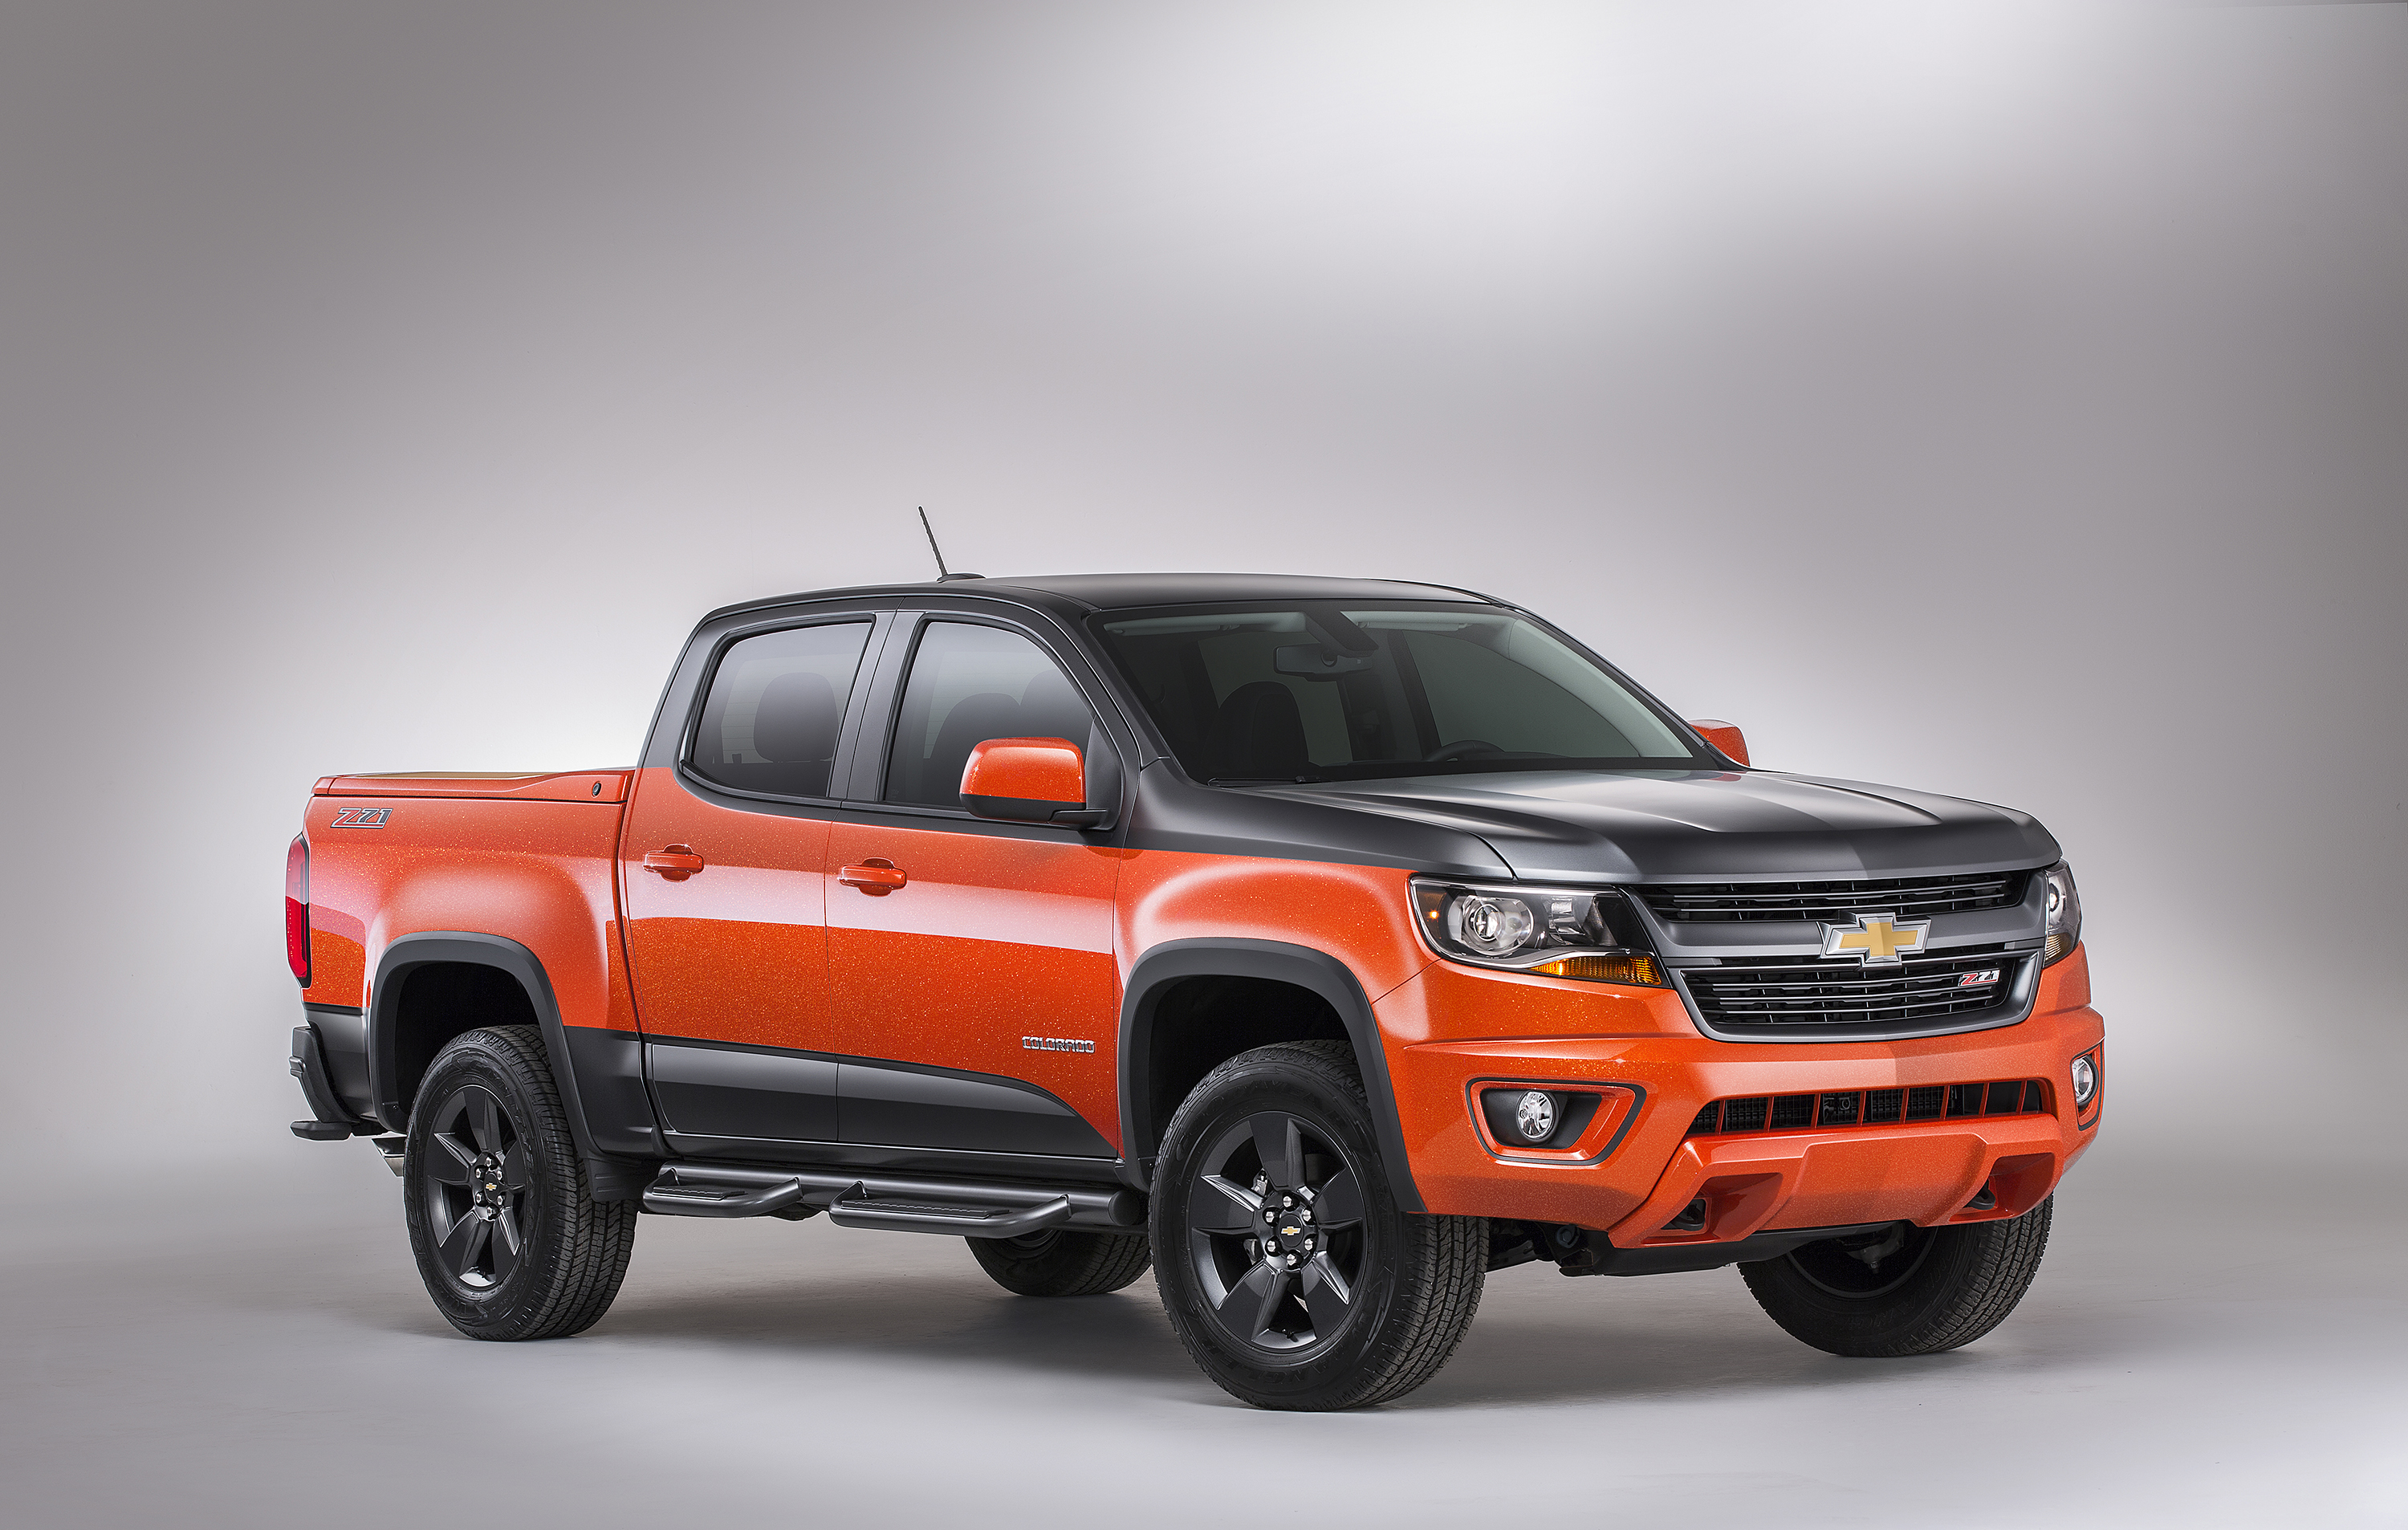 2015 chevrolet colorado concepts unveiled at sema video autoevolution. Black Bedroom Furniture Sets. Home Design Ideas